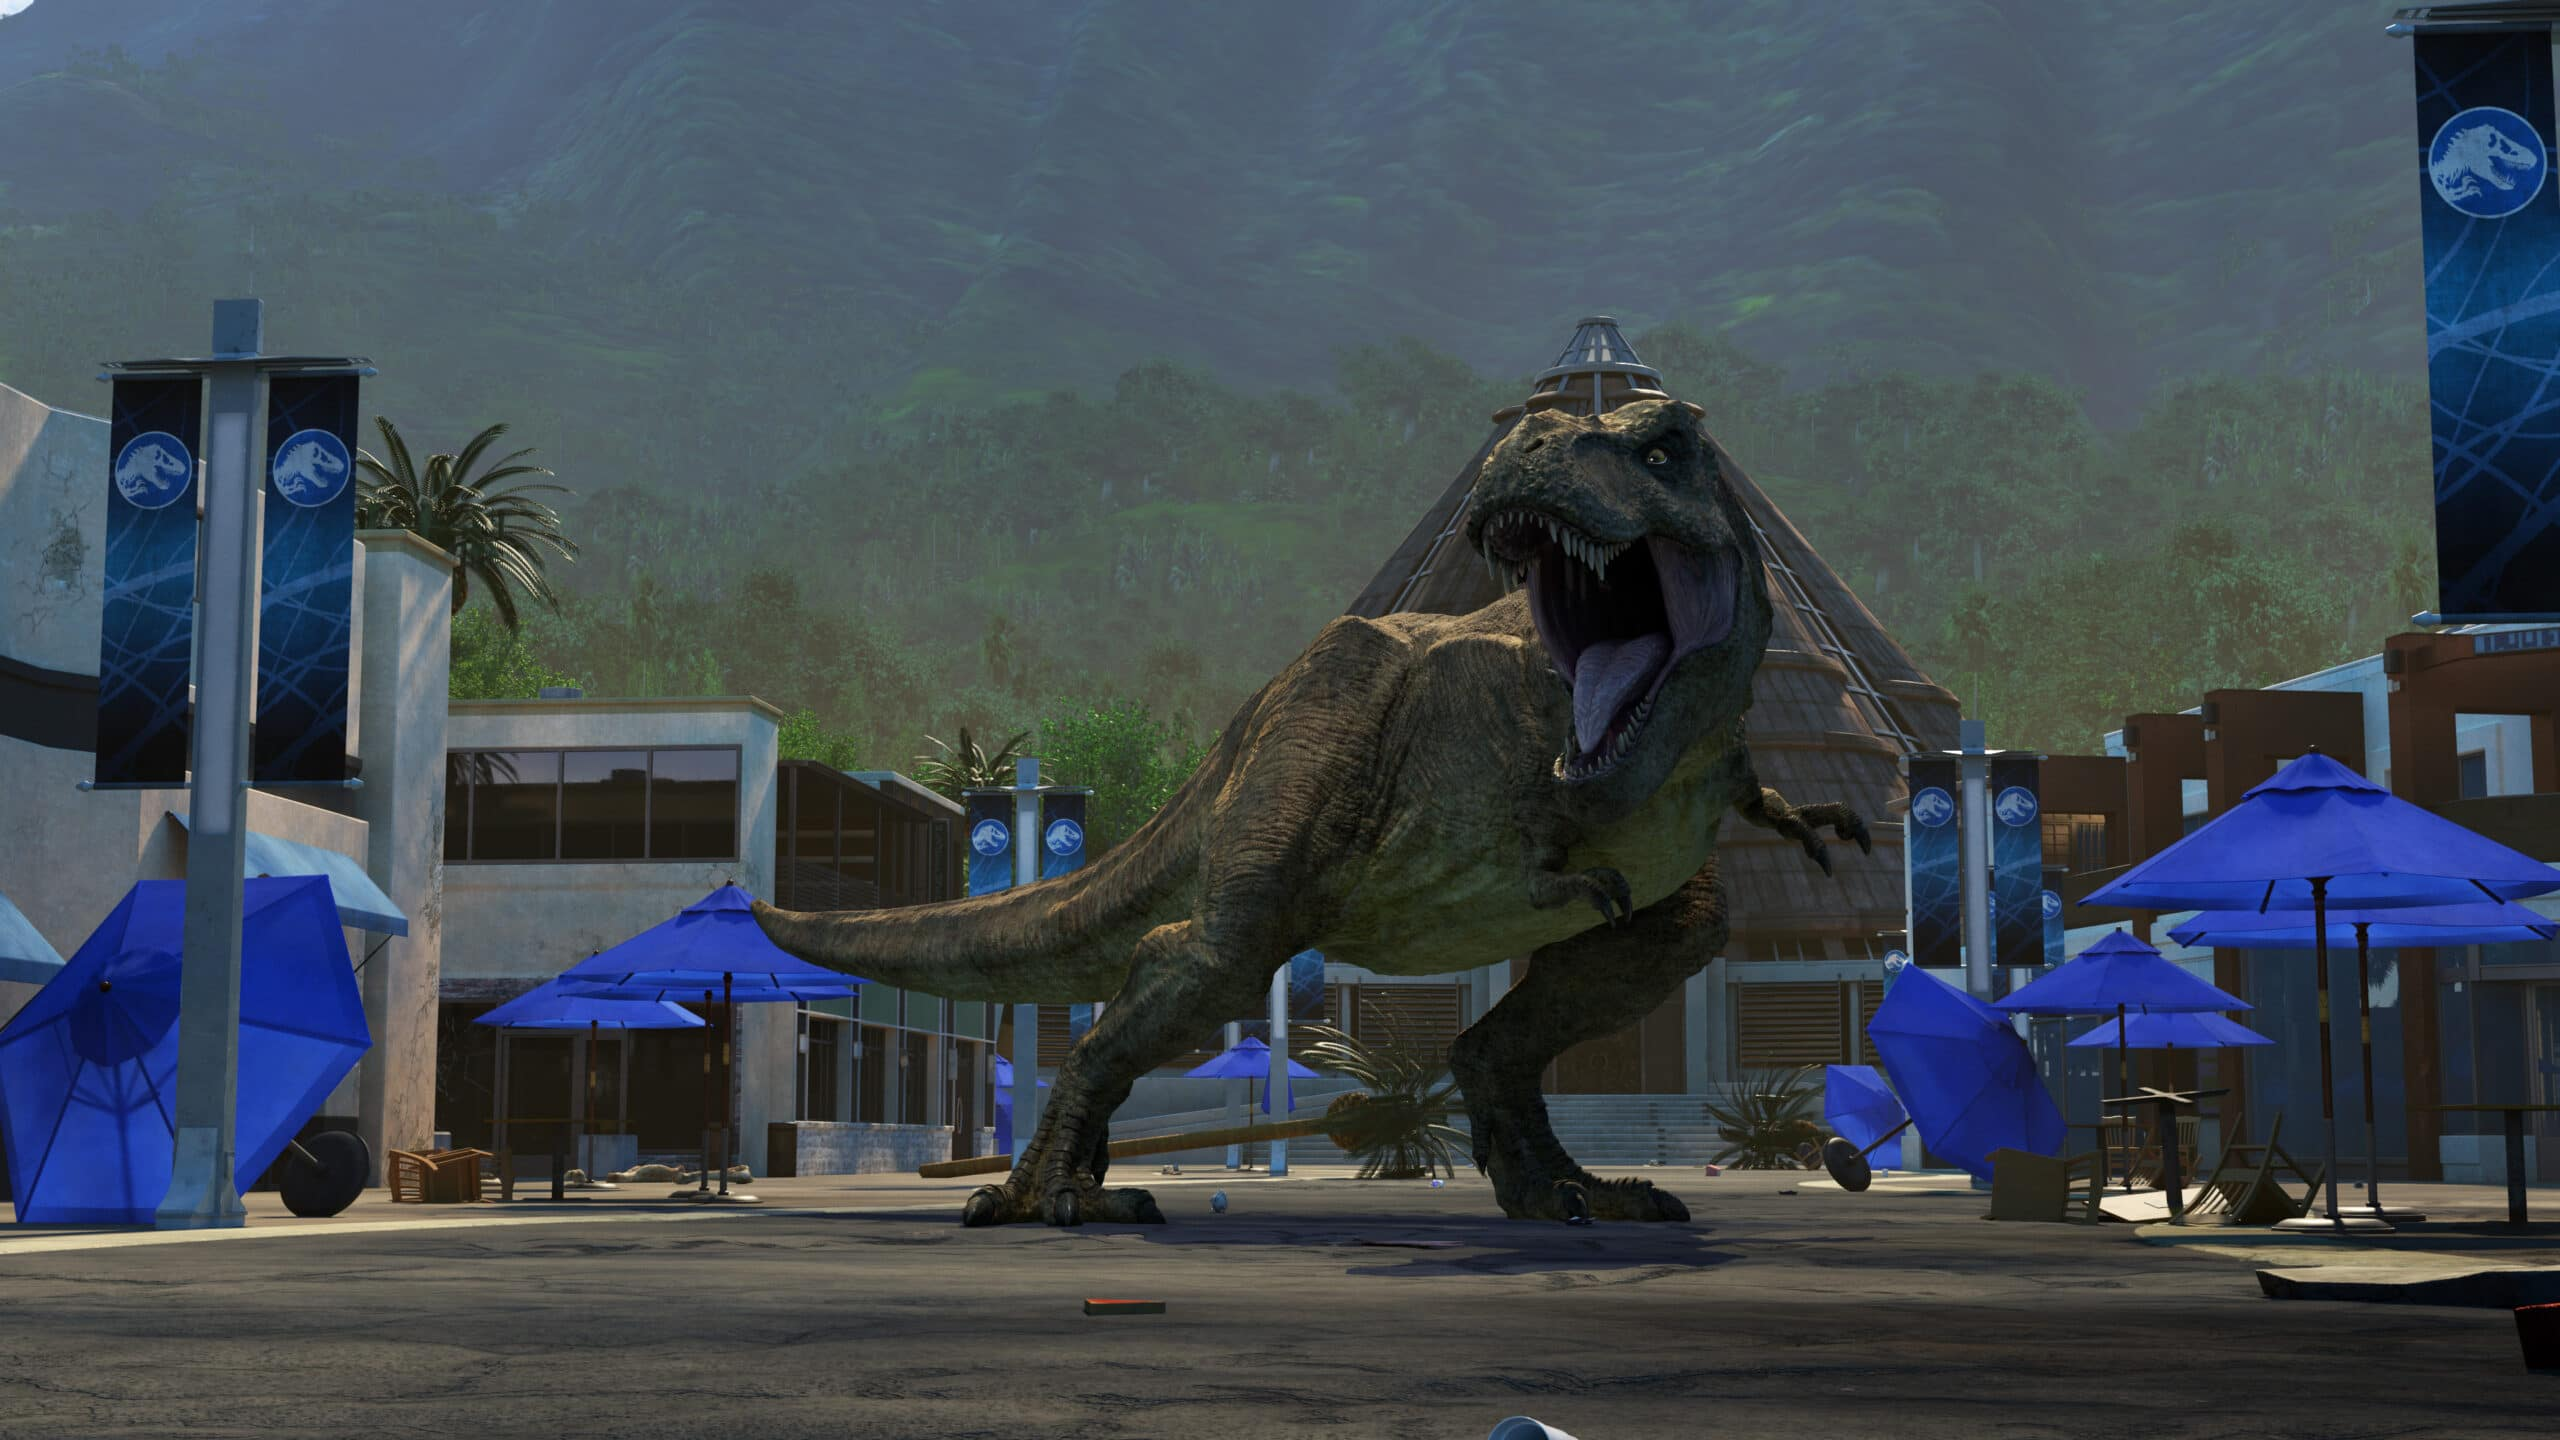 Jurassic World: Camp Cretaceous Dino. Now stranded on an abandoned Isla Nublar, the campers struggle to survive among the wreckage of Jurassic World. DreamWorks Animation Jurassic World: Camp Cretaceous will be returning to Netflix for a second season on January 22, 2021.